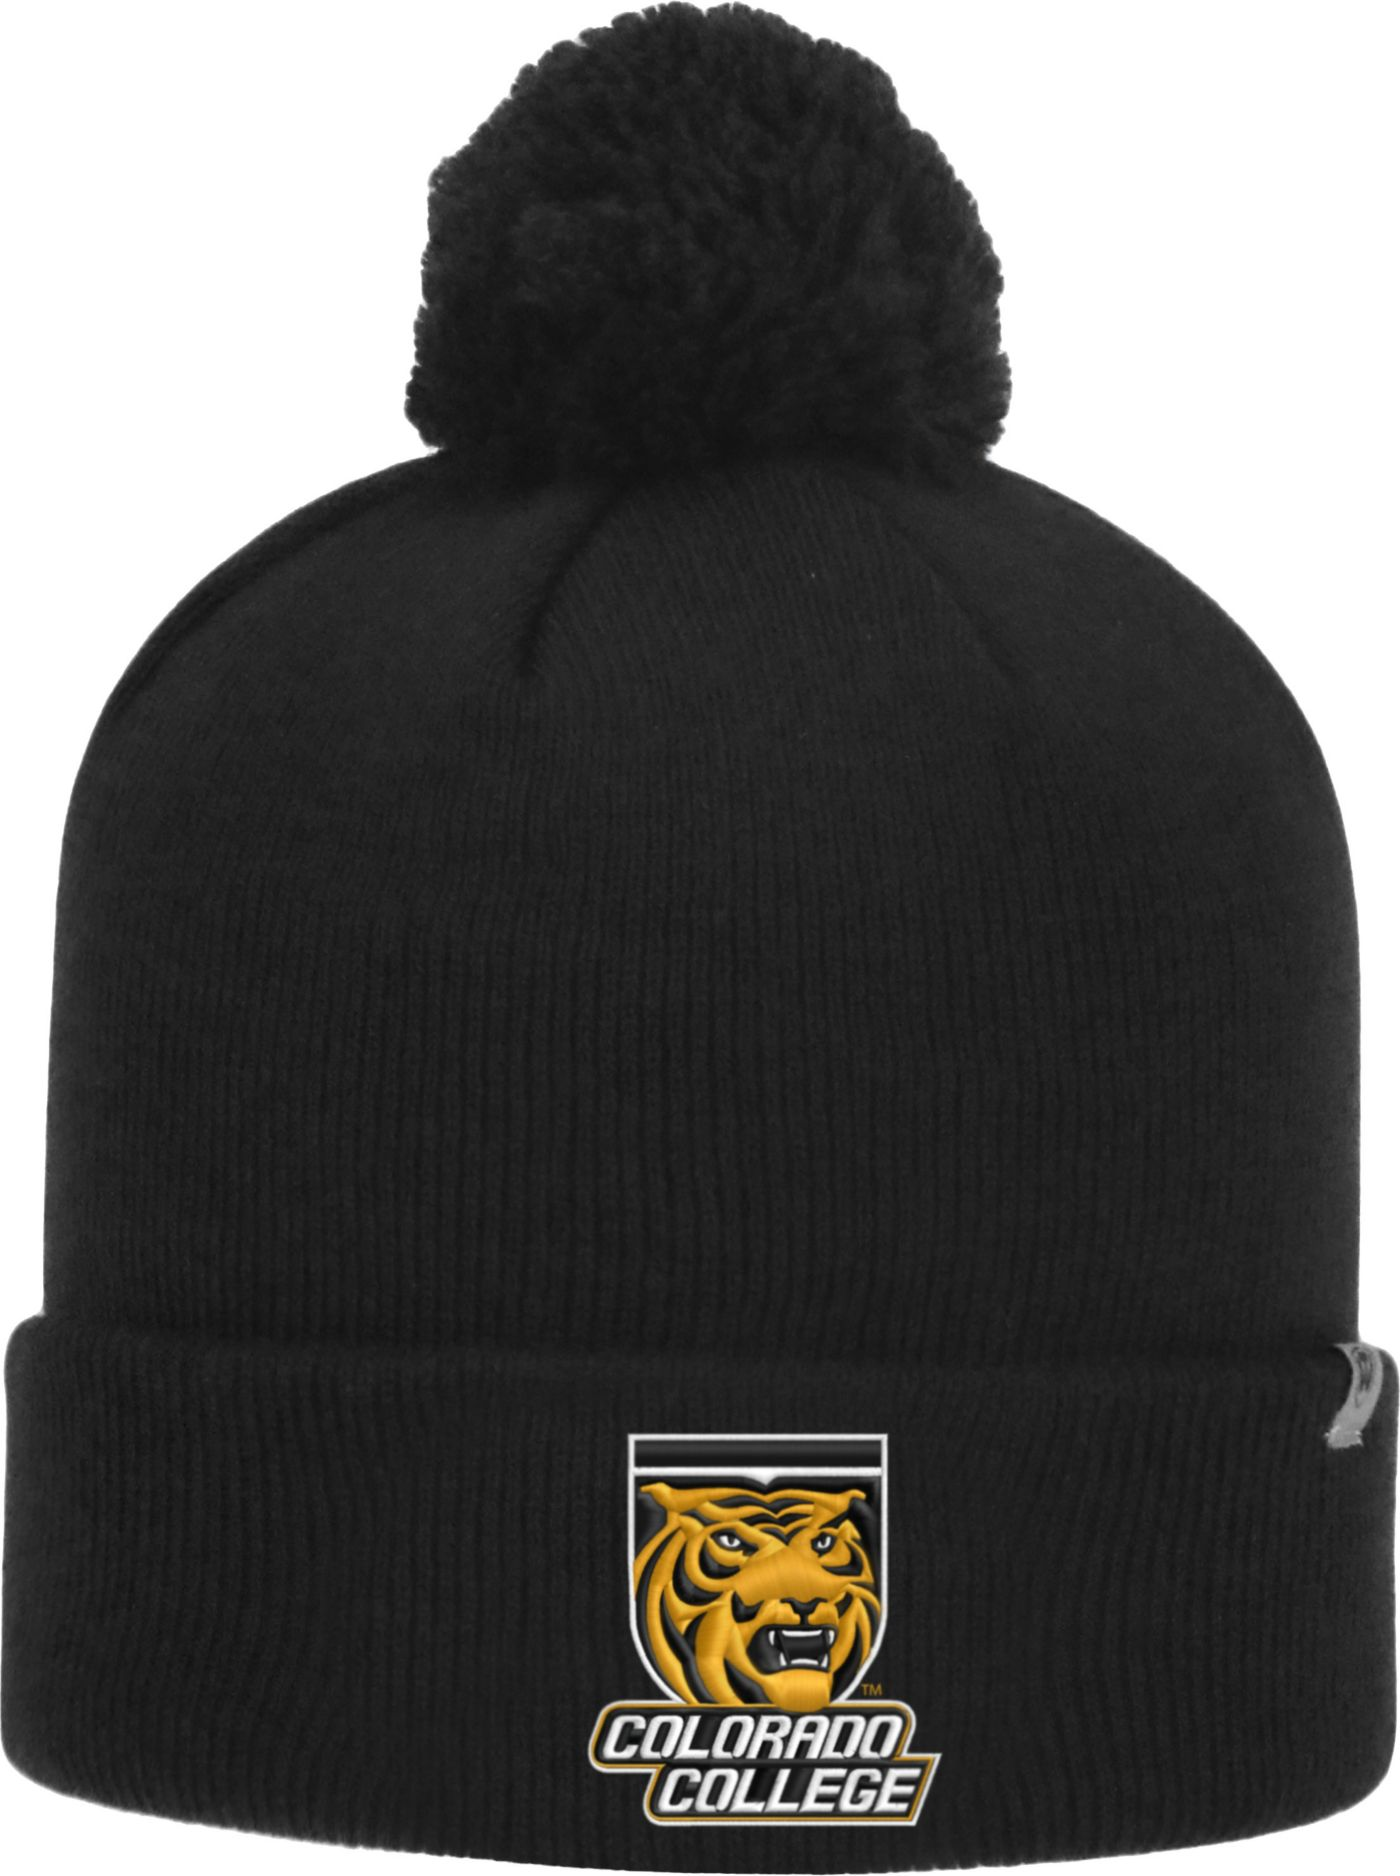 Top of the World Men's Colorado College Tigers Black Pom Knit Beanie